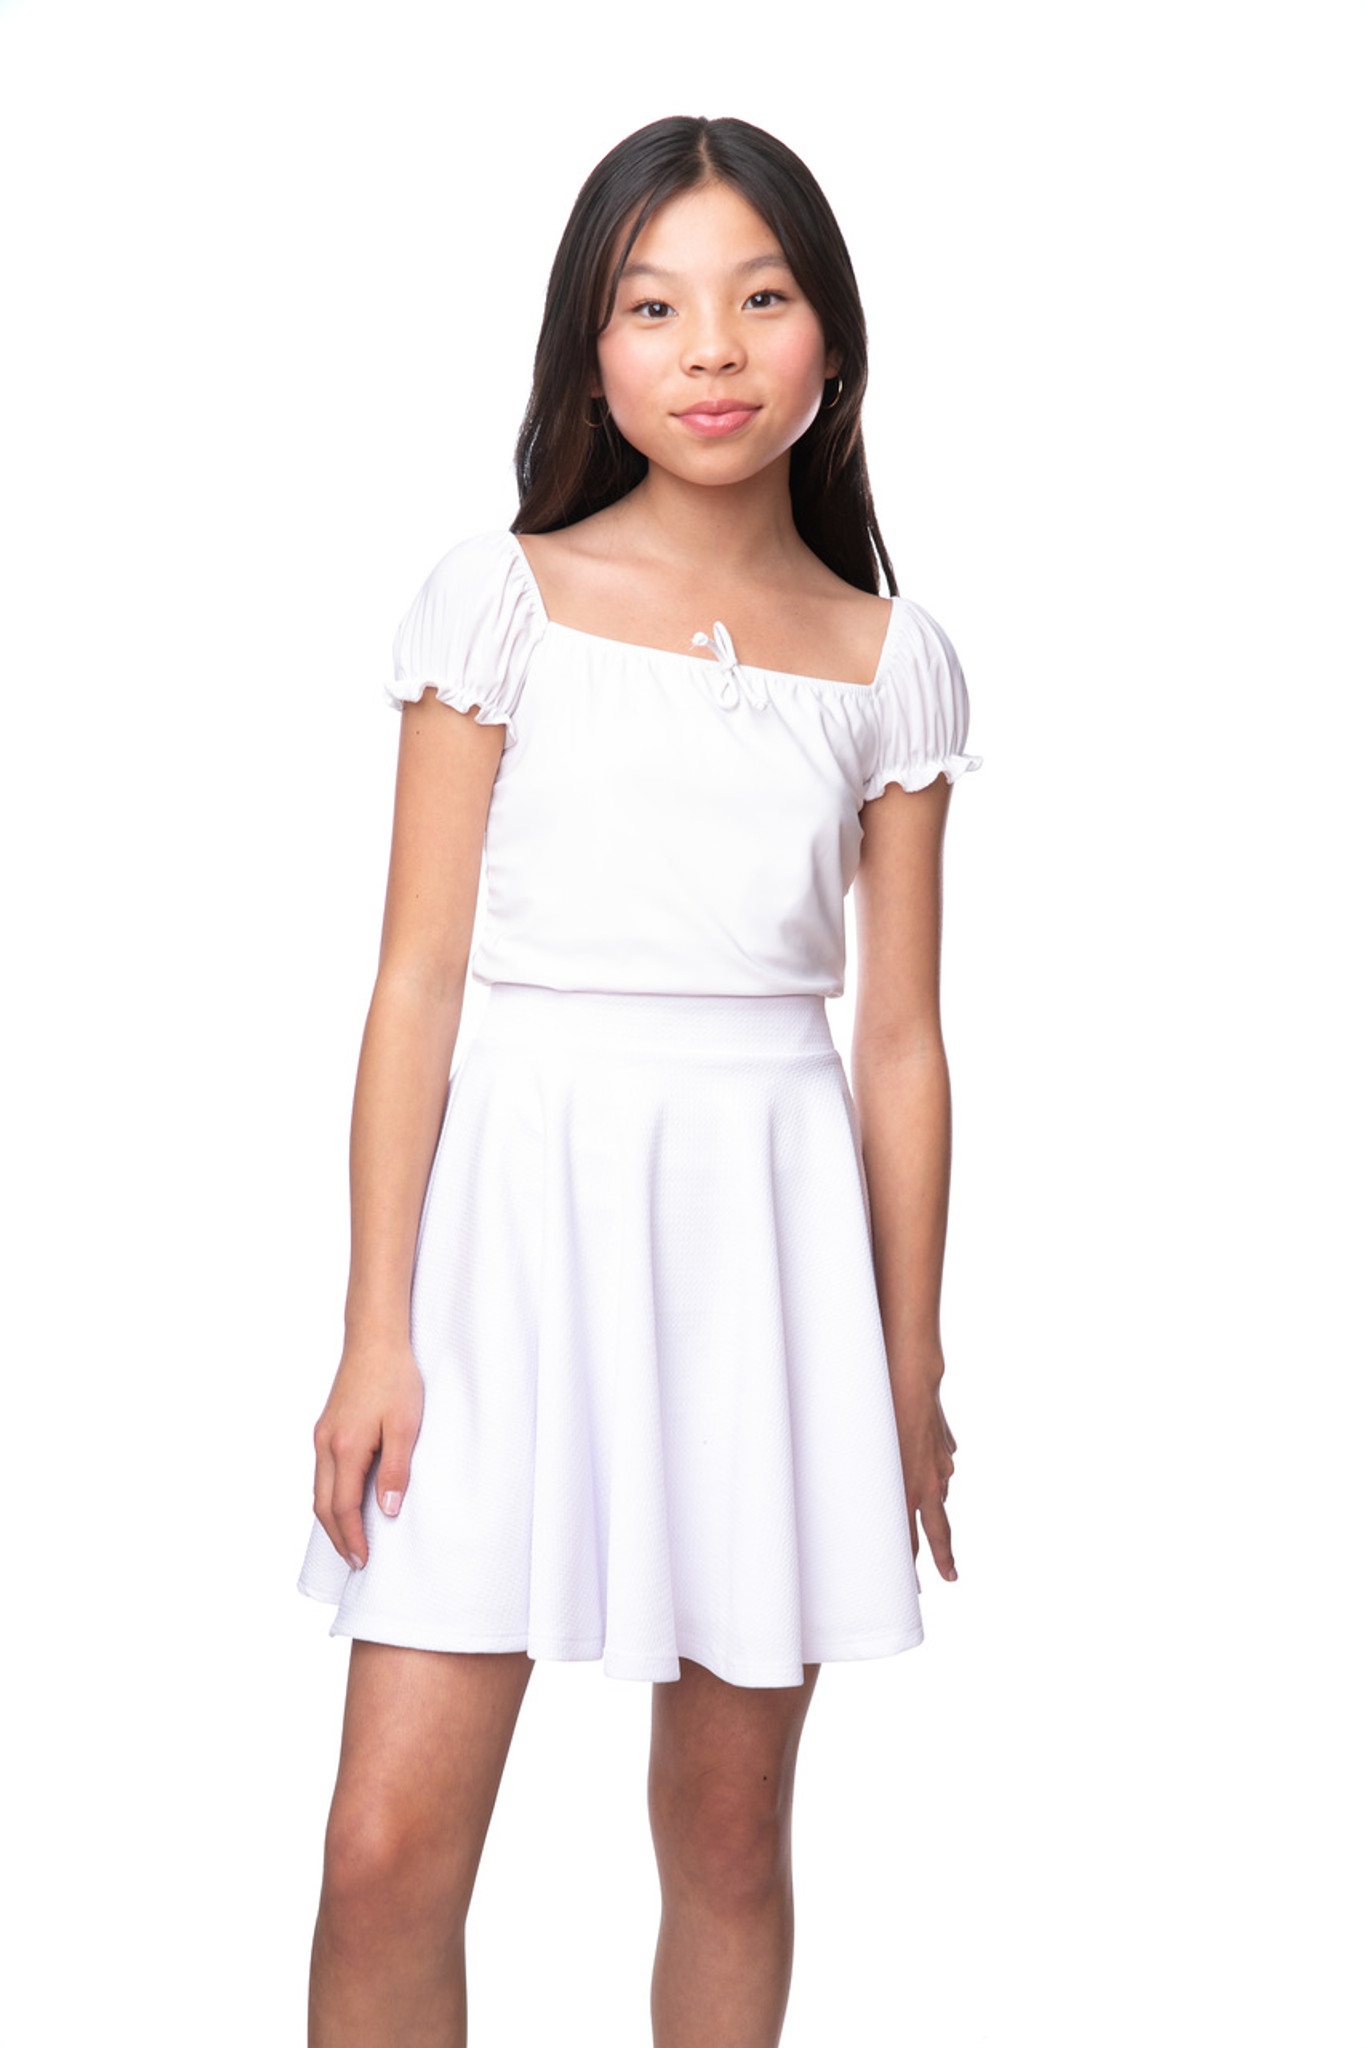 Tween Girls White Short Sleeve Bow Top